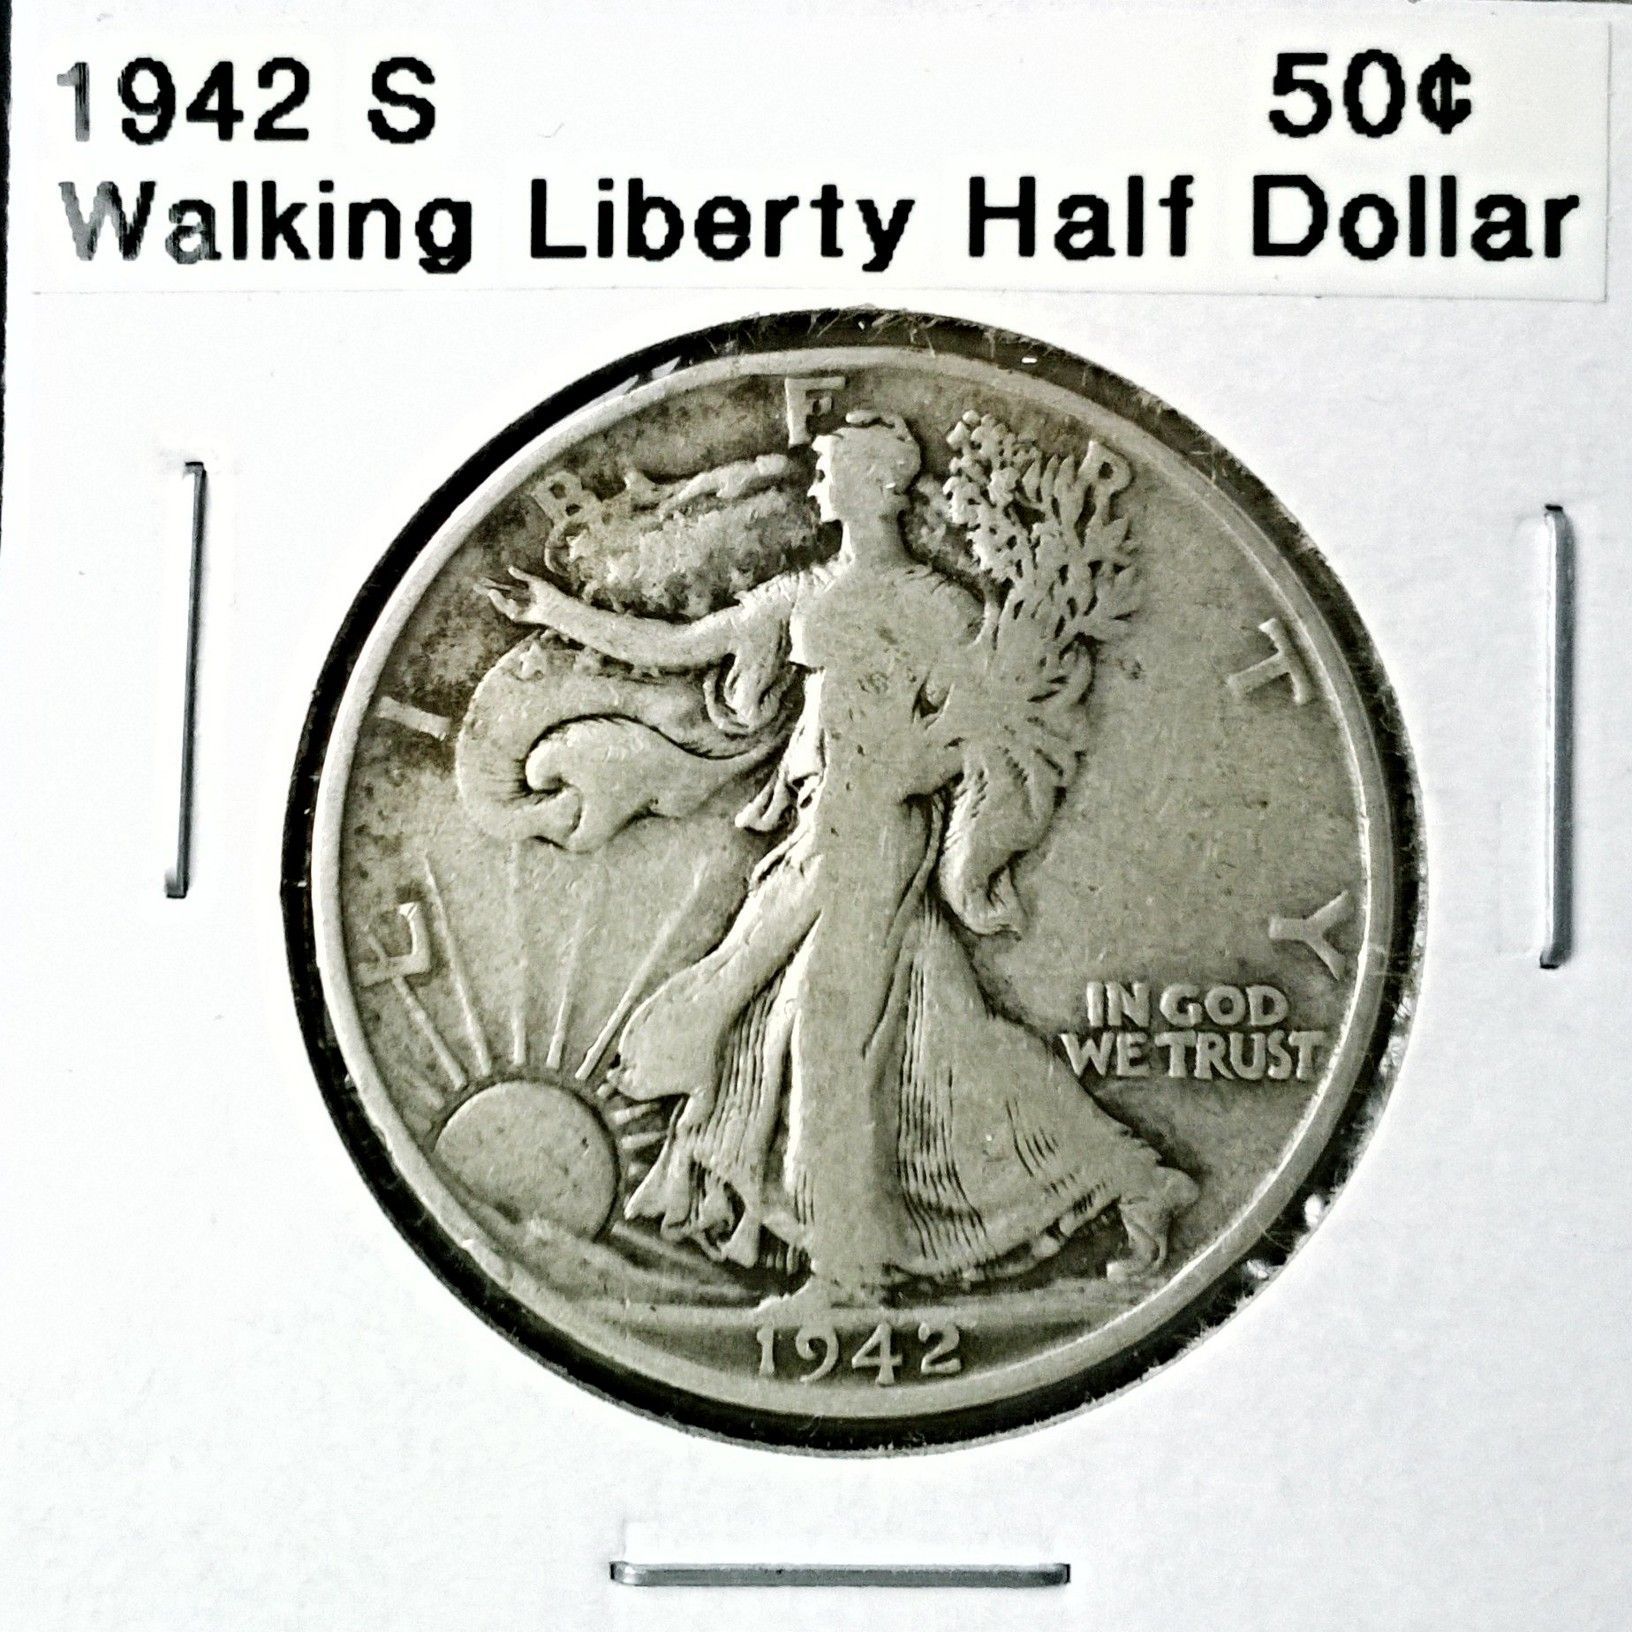 1942 S Walking Liberty Half Dollar For Sale Buy Now